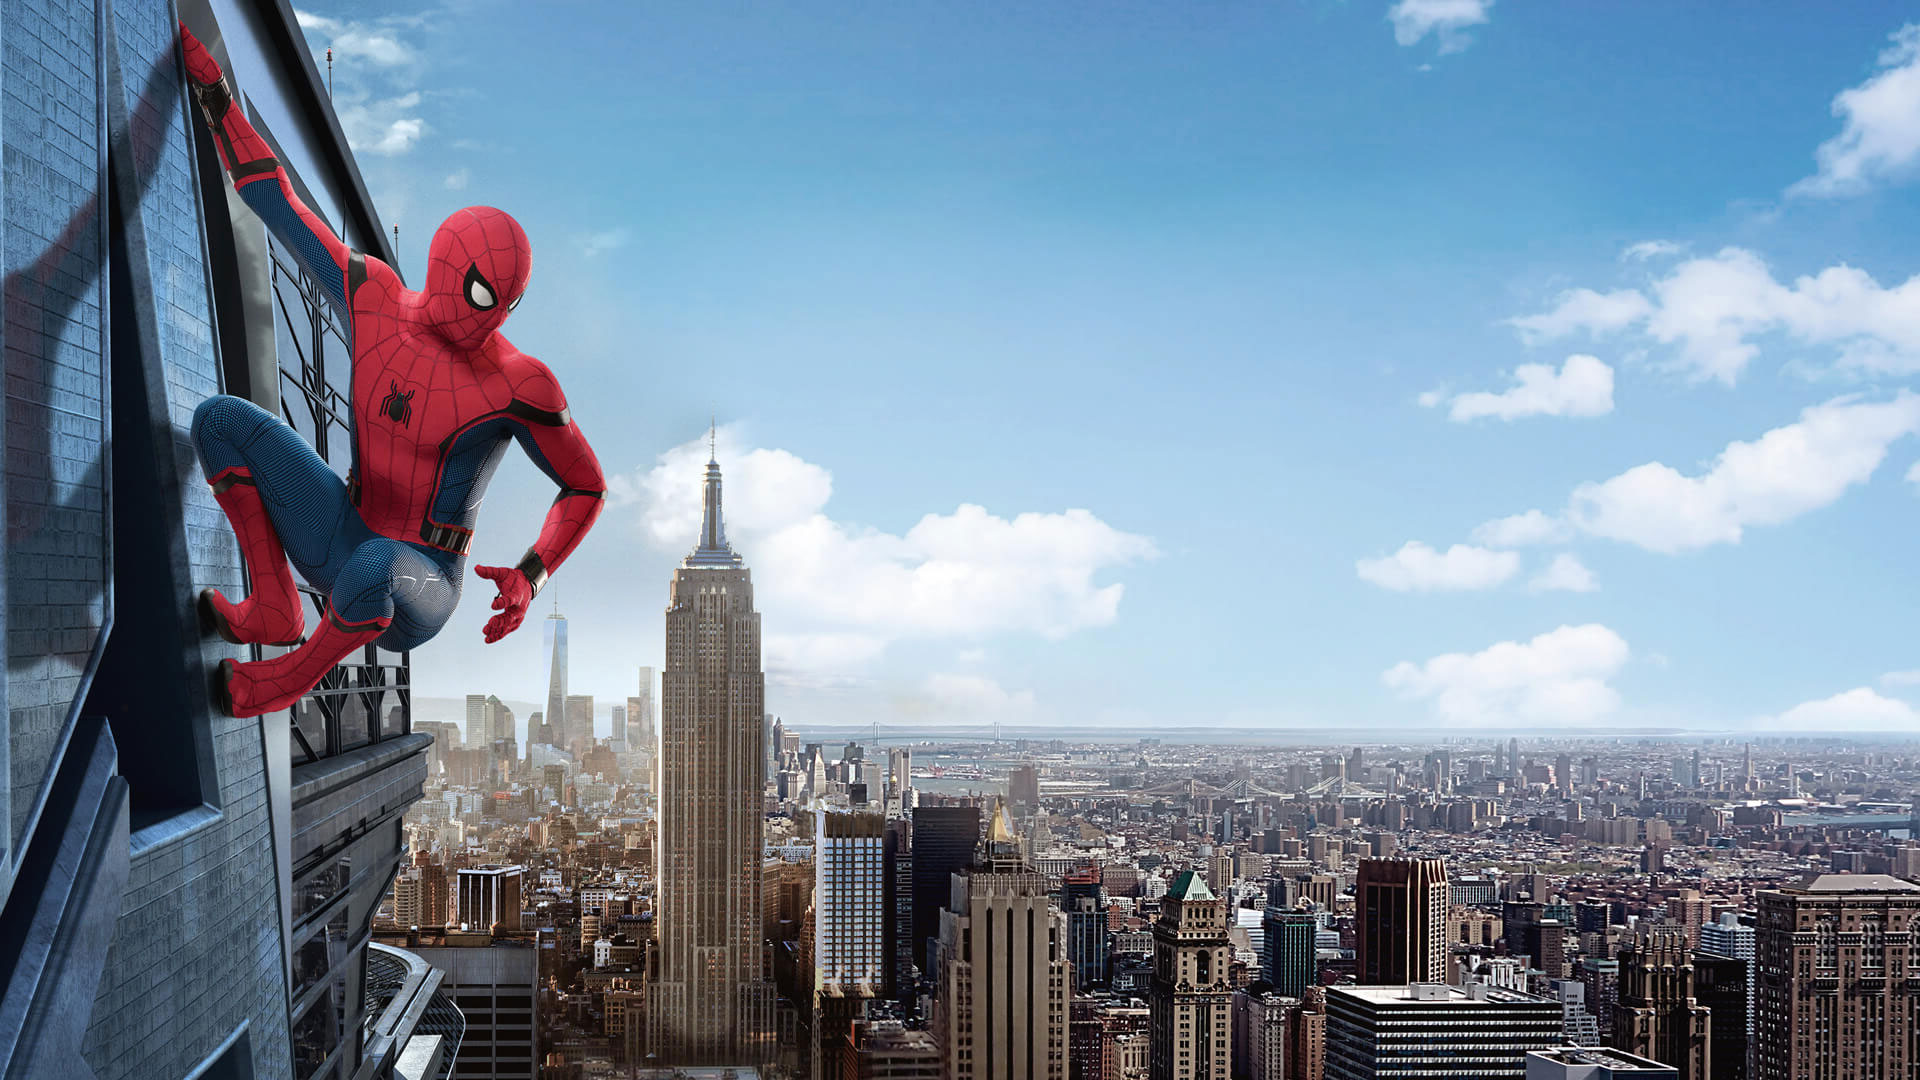 Spiderman Wallpaper on newwallpaperdownloadcom 1920x1080